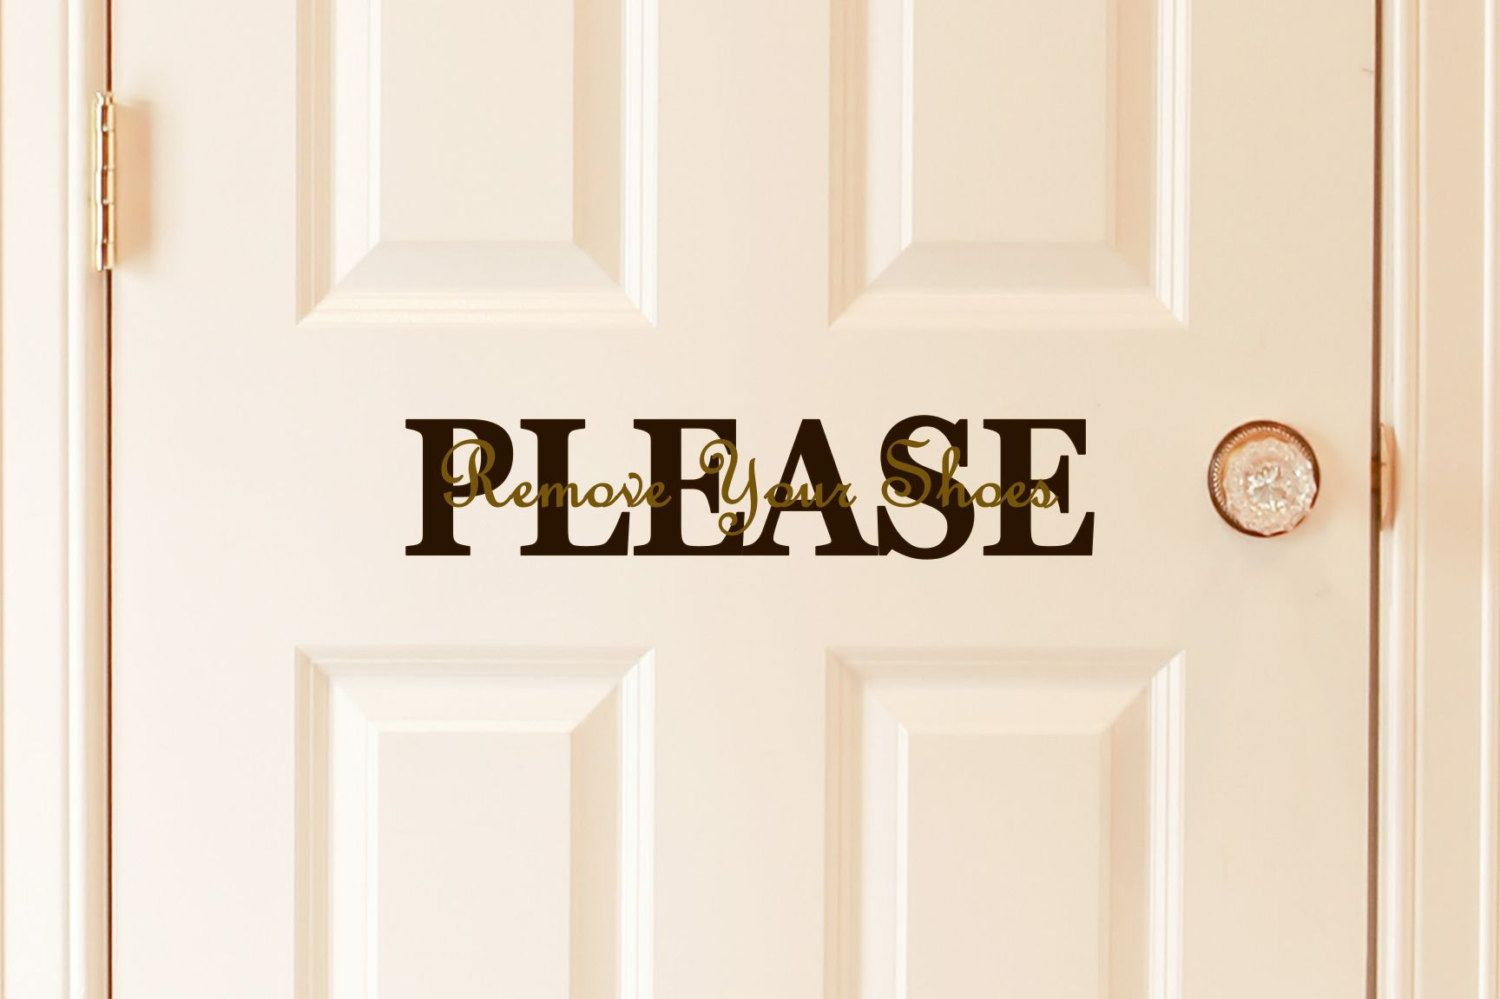 Please Remove Your Shoes Vinyl Door Decal Door Decal Custom - Custom vinyl decals for wood   removal options